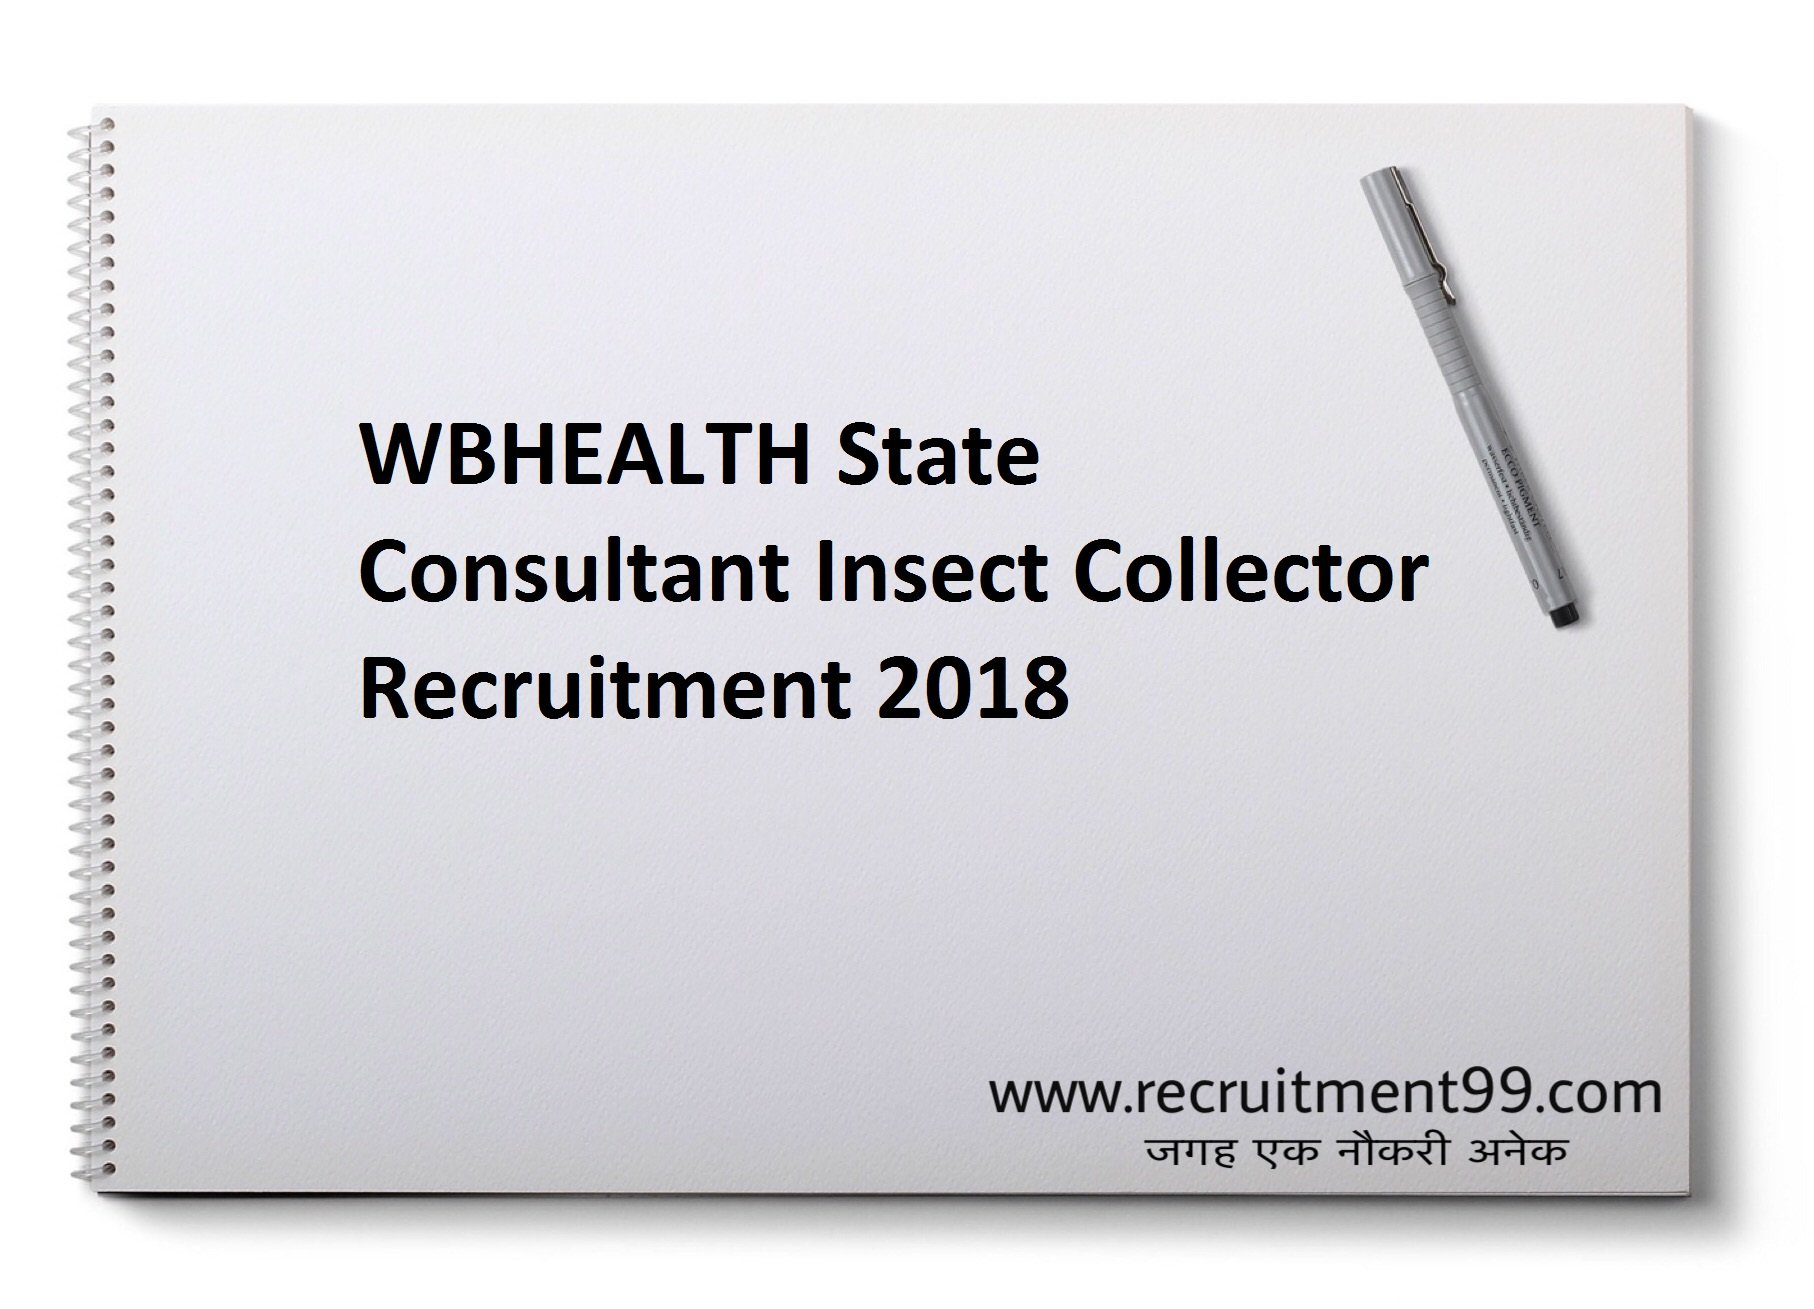 WBHEALTH State Consultant Insect Collector Recruitment Admit Card Result 2018